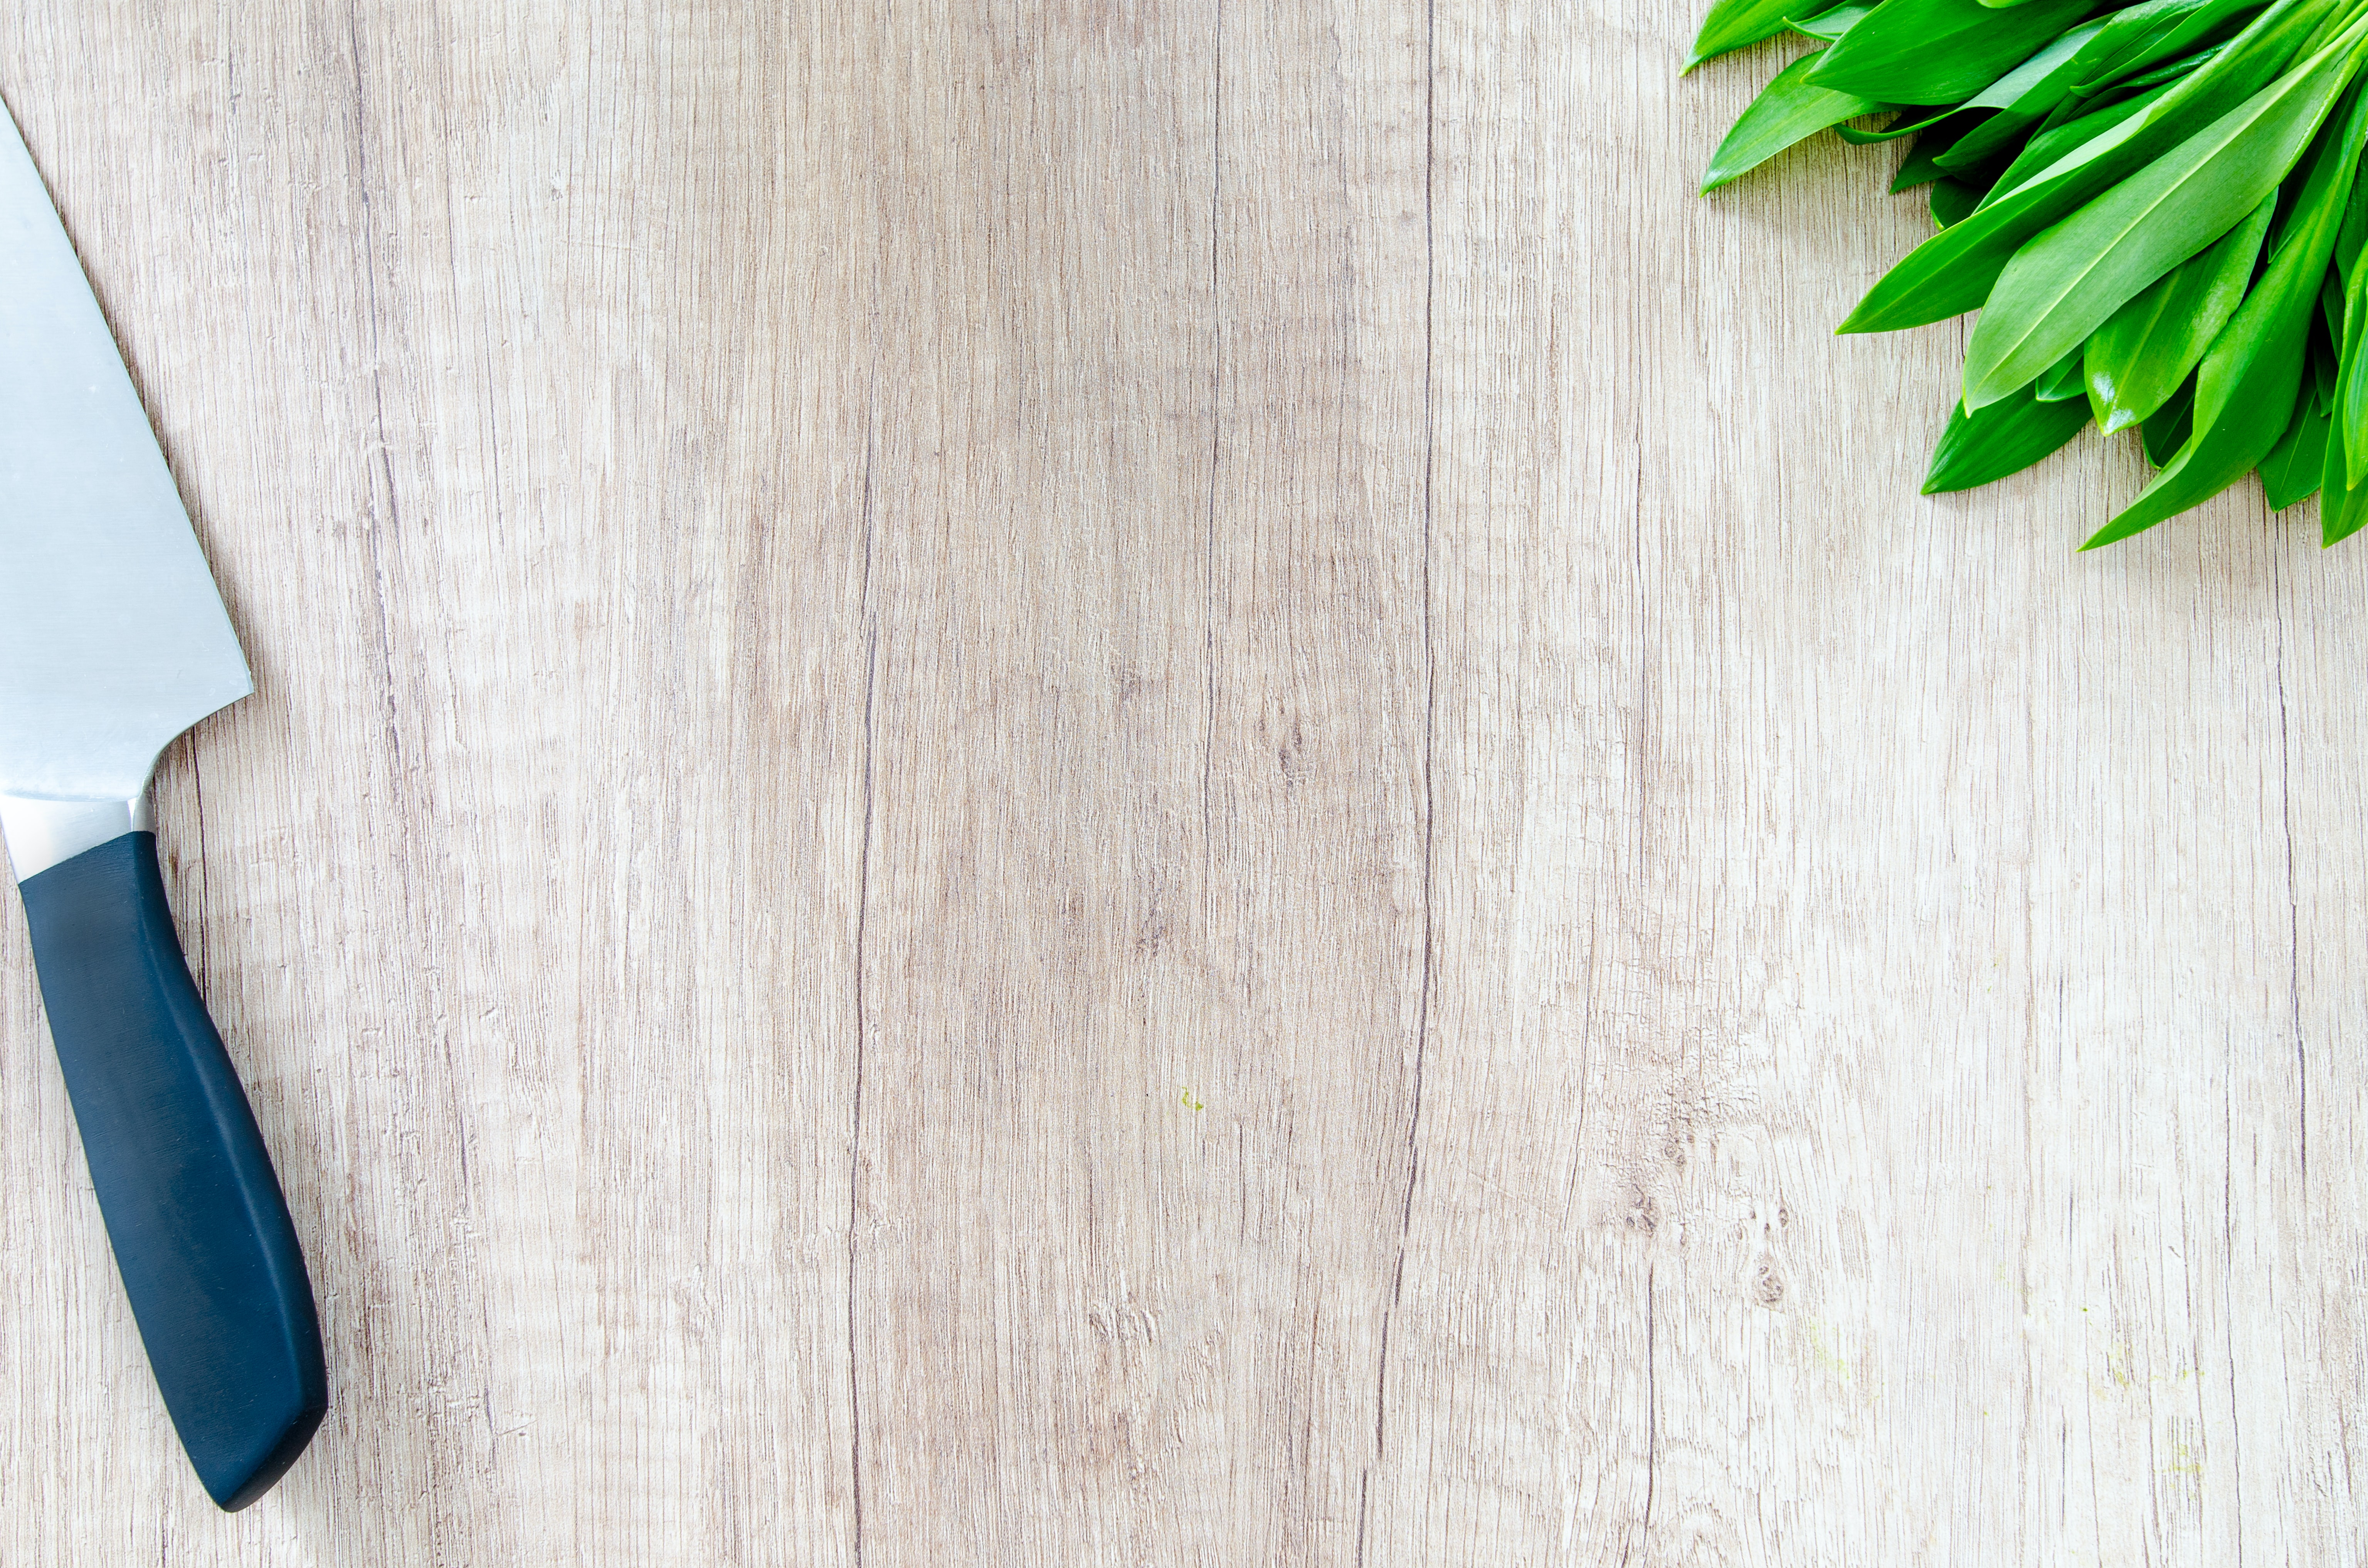 500+ Cutting Board Pictures [HD] | Download Free Images on ...